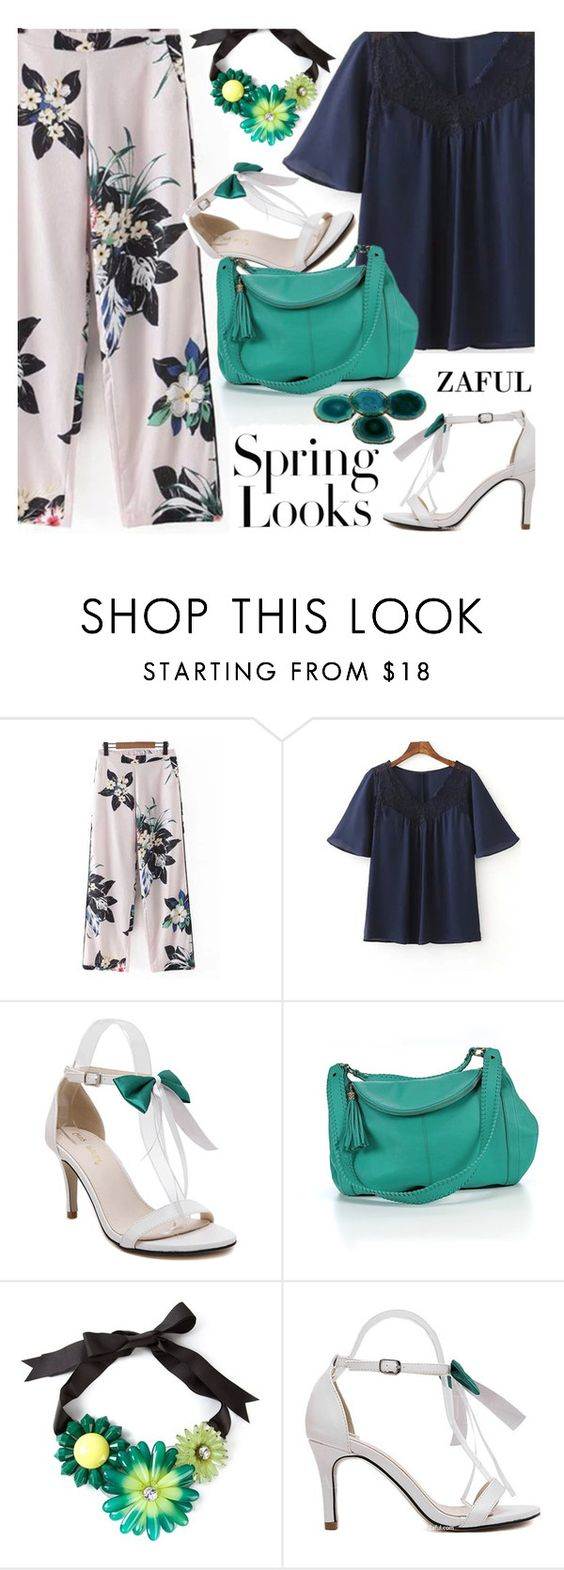 """Floral for spring"" by ansev ❤ liked on Polyvore featuring Onna Ehrlich, H&M, Marina Fossati, RabLabs and zaful"